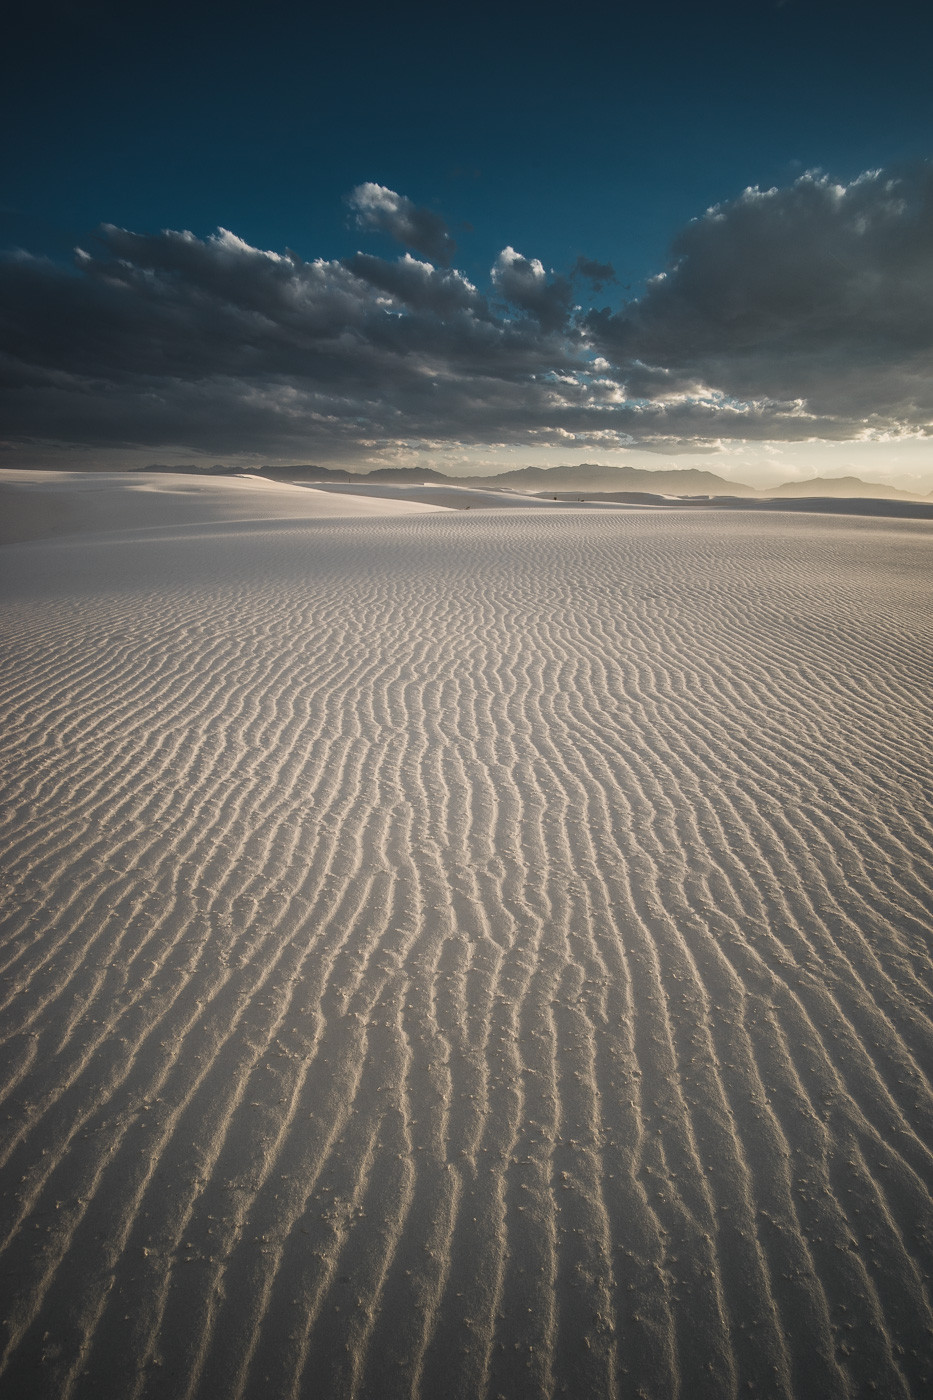 White Sands National Monument, NM. Voigtlander Heliar 15mm/4.5, a7II, f/11, 1/200th, ISO 200, Full Resolution (14MB)